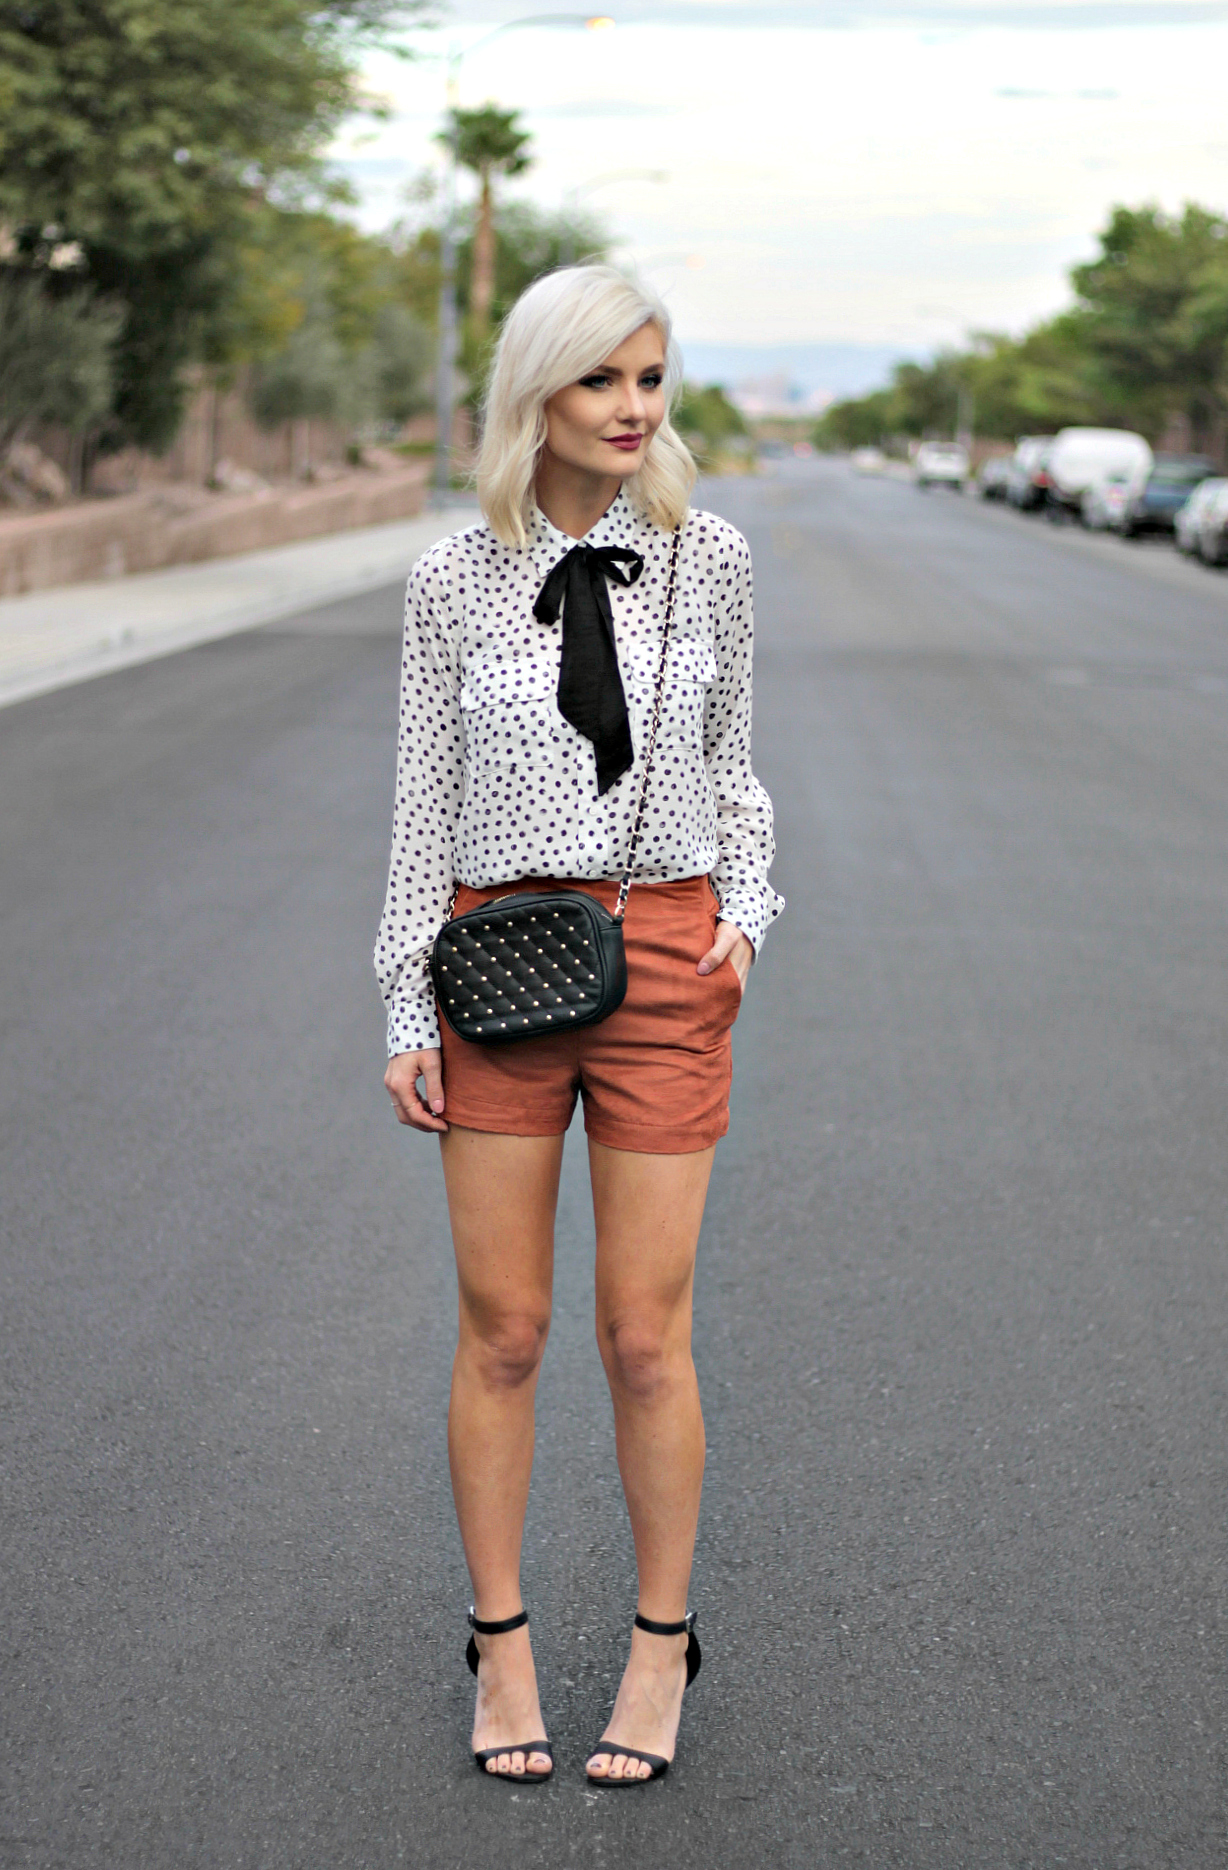 0ecce6814f83 suede-shorts-polka-dot-shirt-bow-blouse-studded-purse-lindsey-simon-the-nomis-niche-las-vegas-fashion-blogger-beauty-blogger-2  - The Nomis Niche